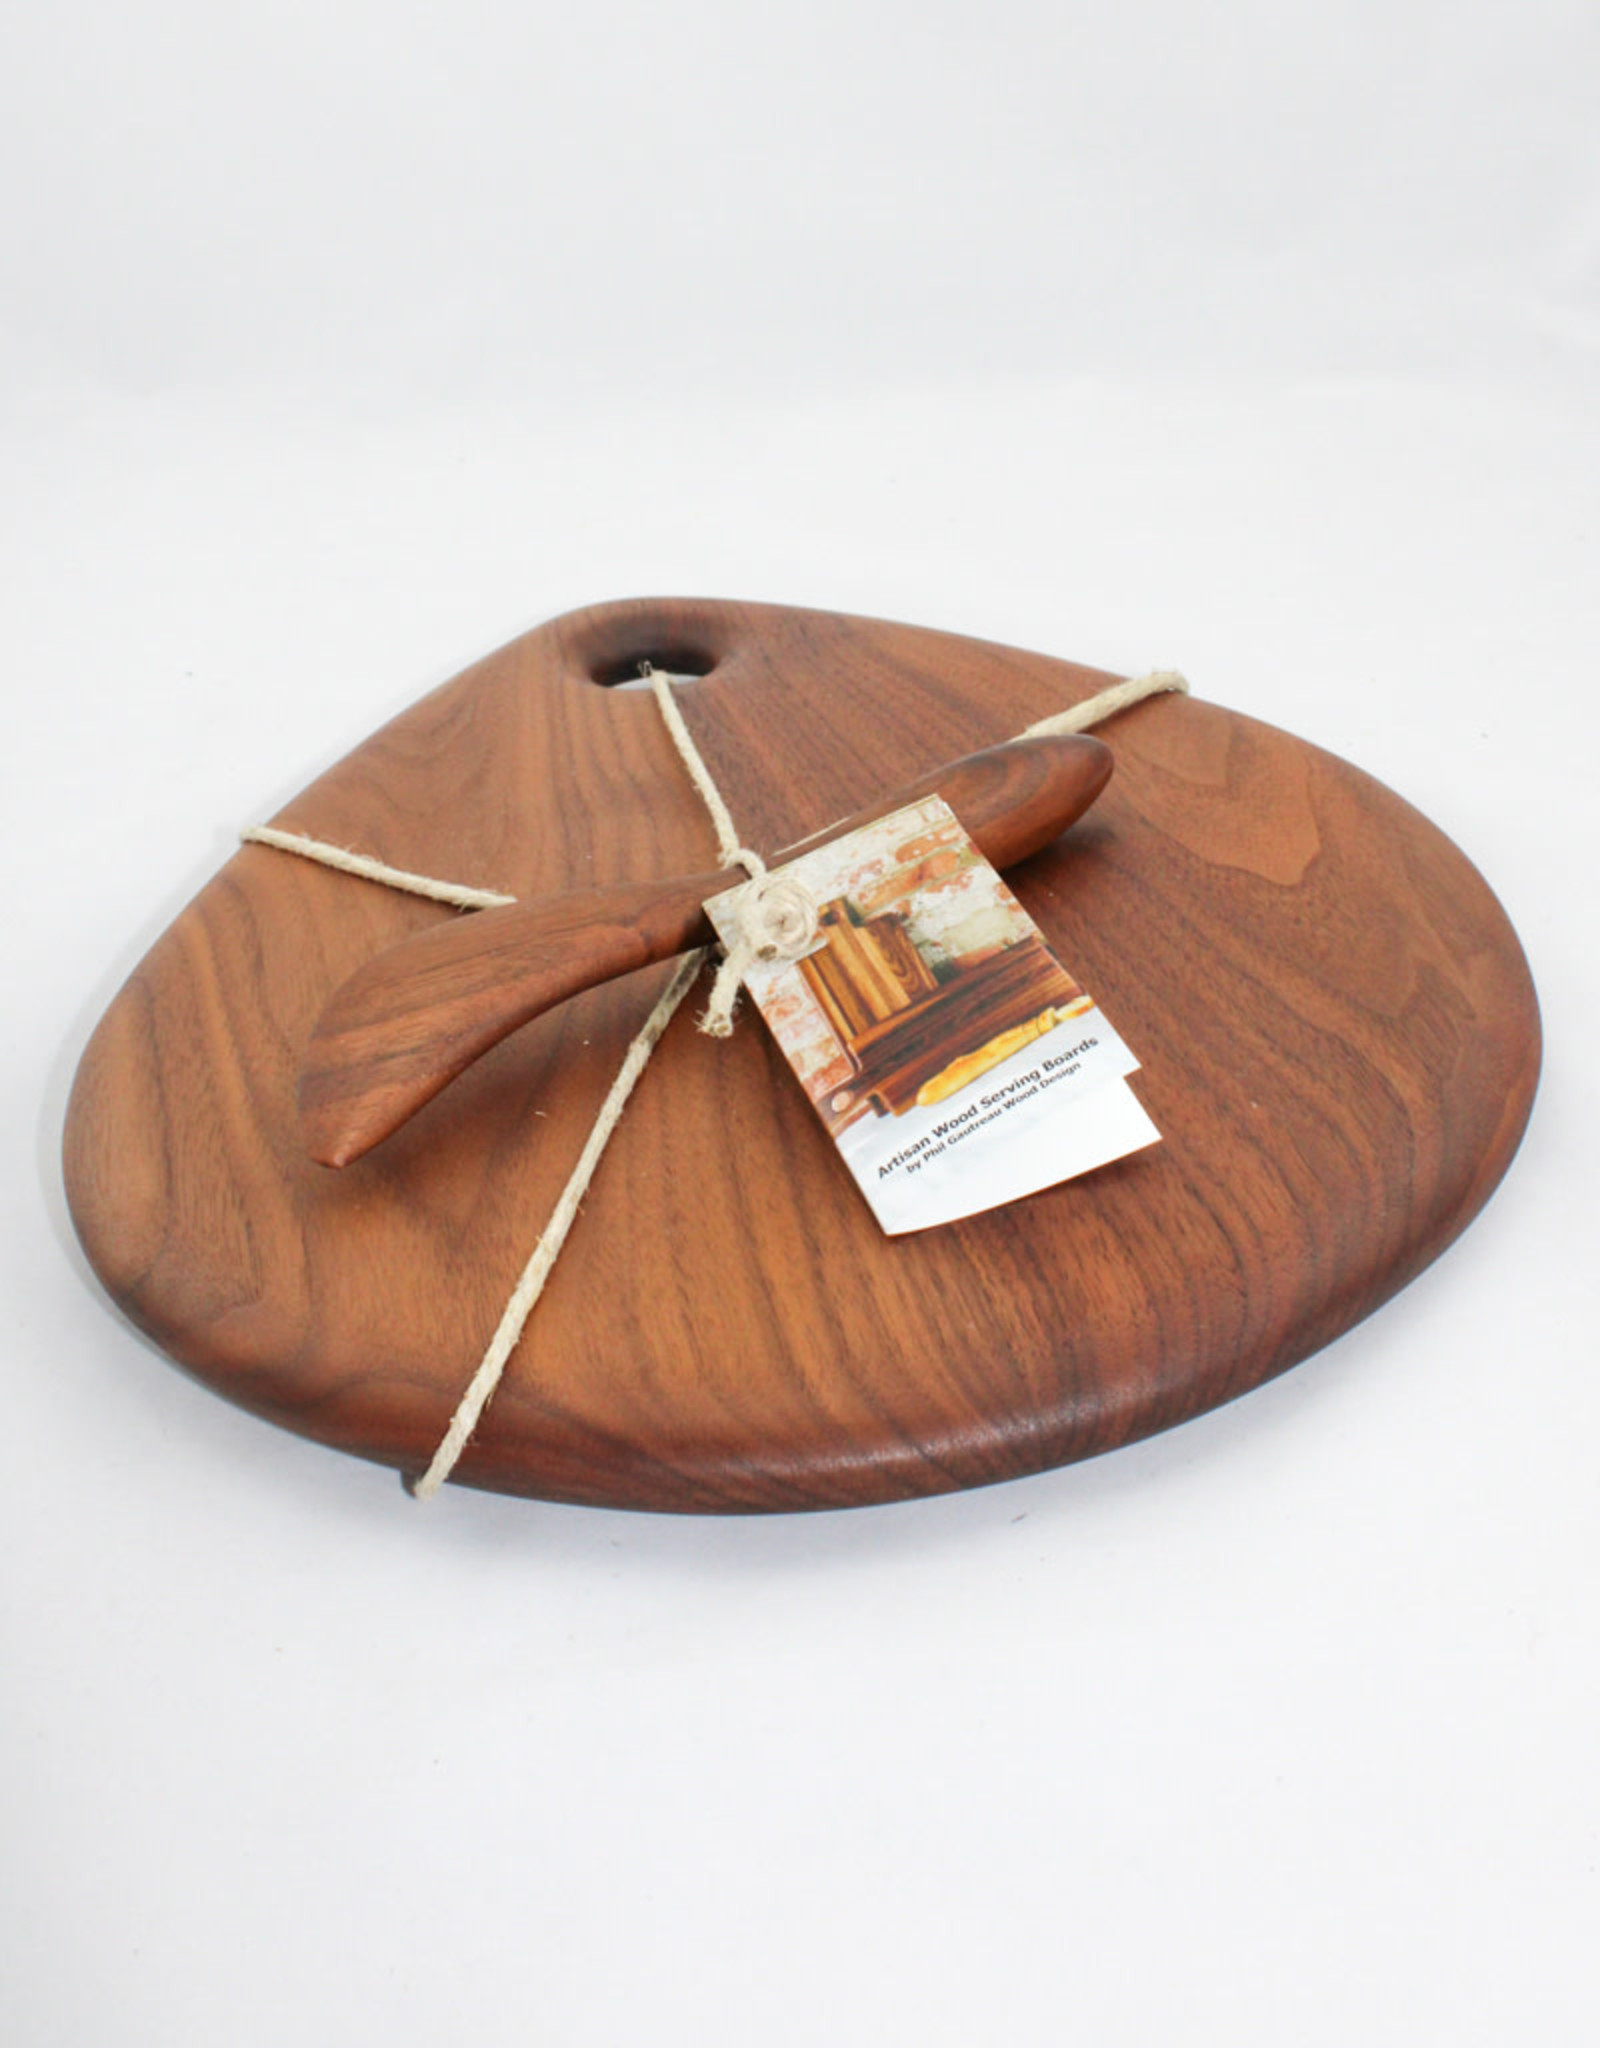 Phil Gautreau Wood Design Artisan Walnut Teardrop Serving Board